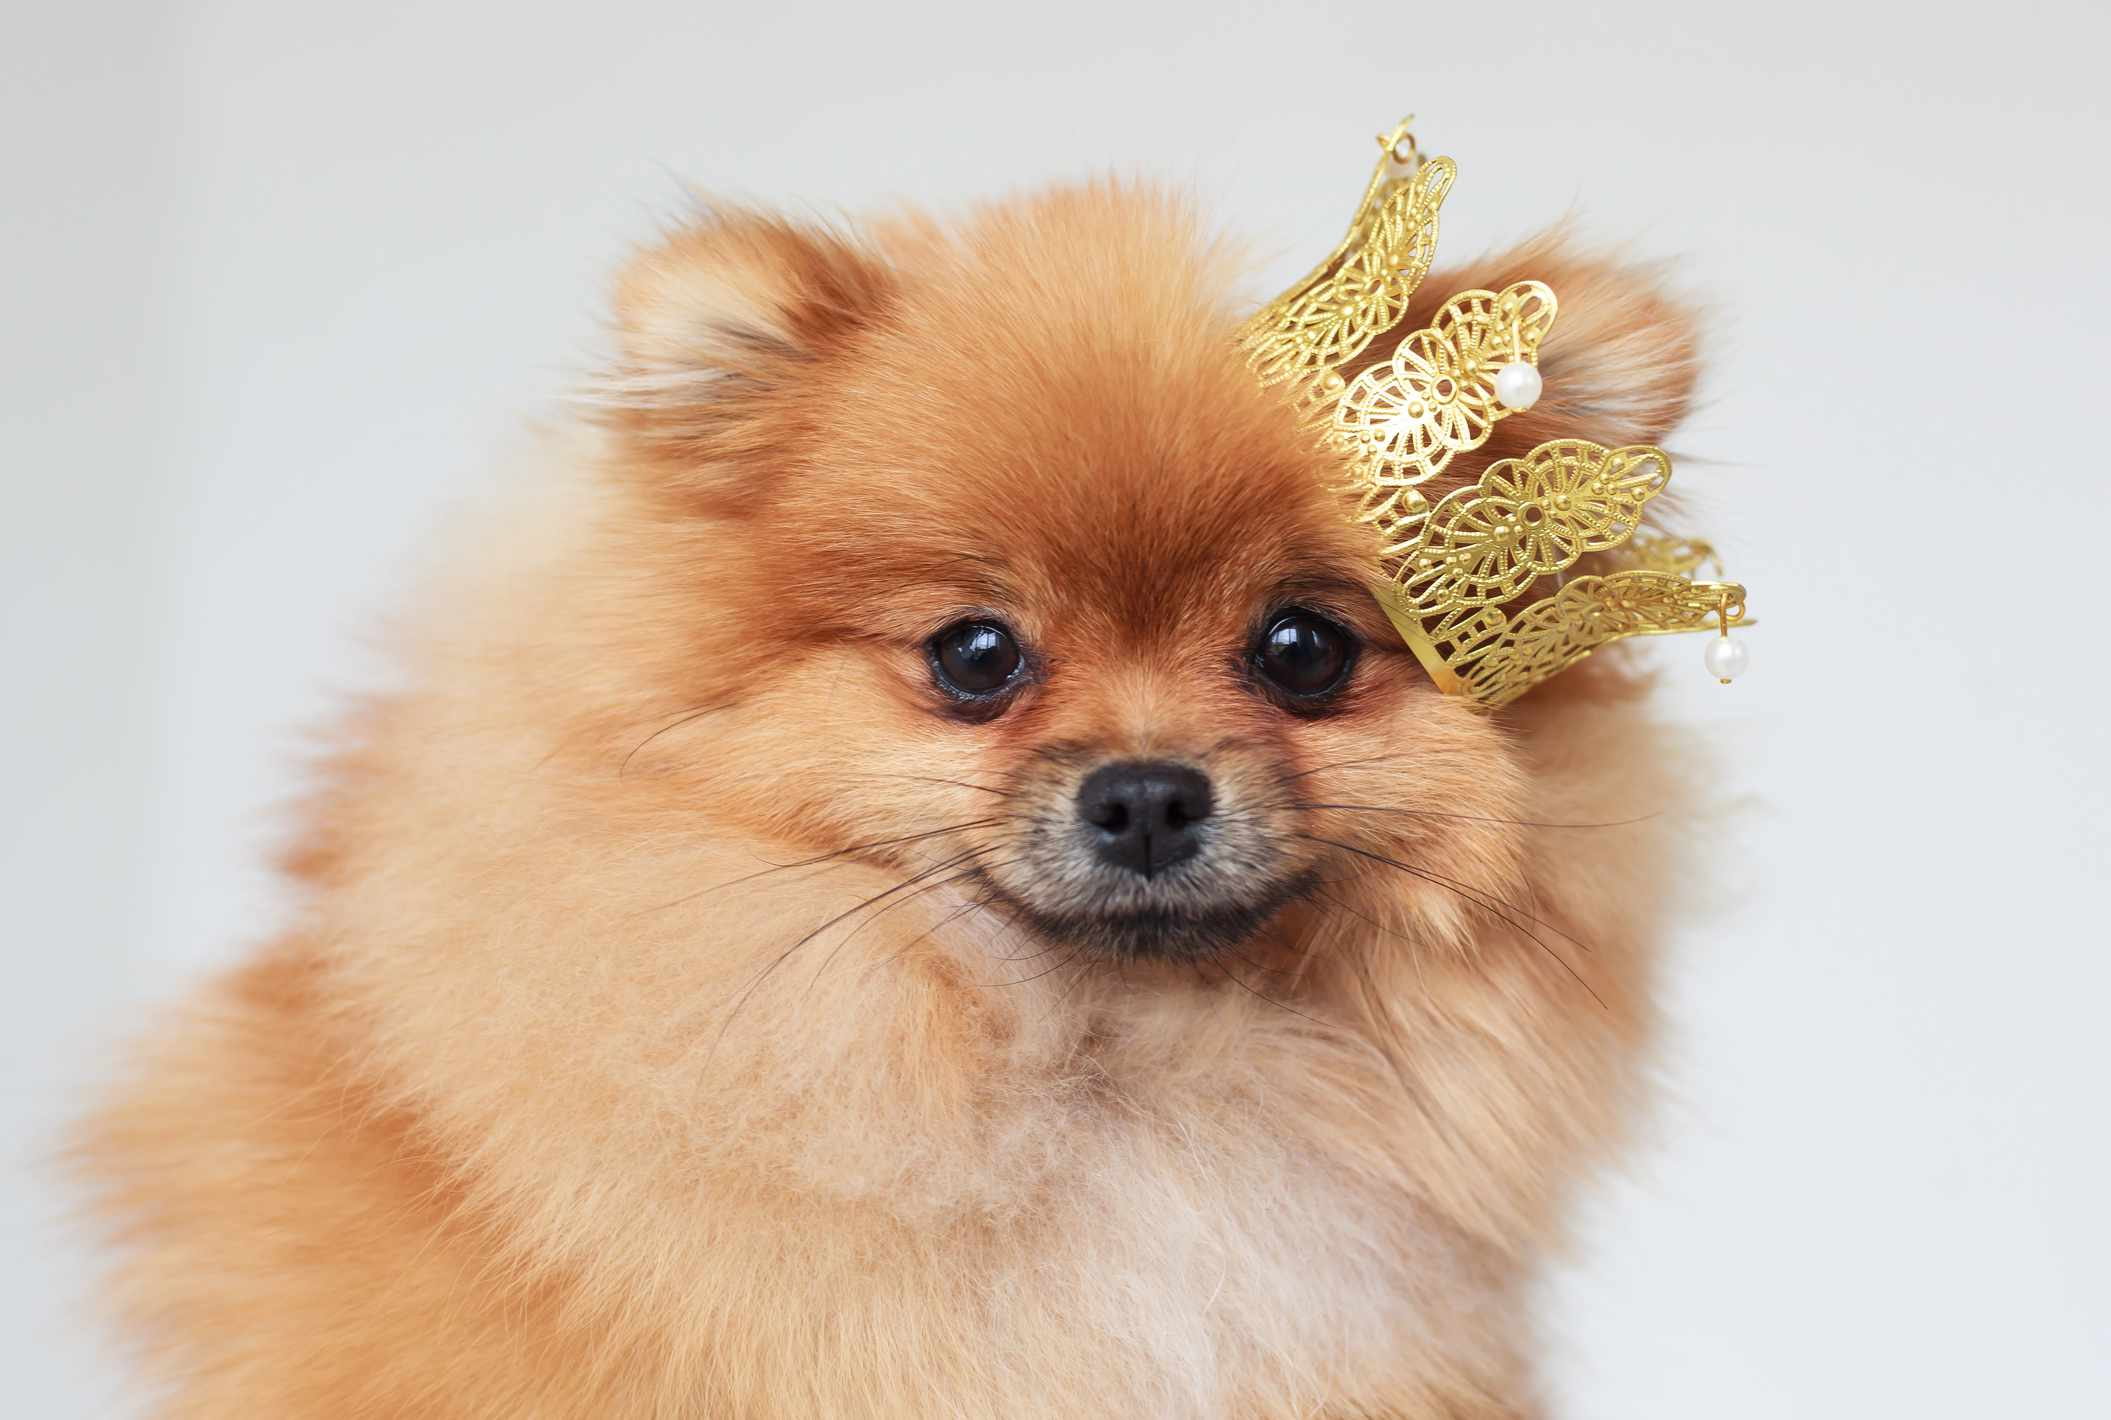 A Pomeranian with a little Crown over its ear